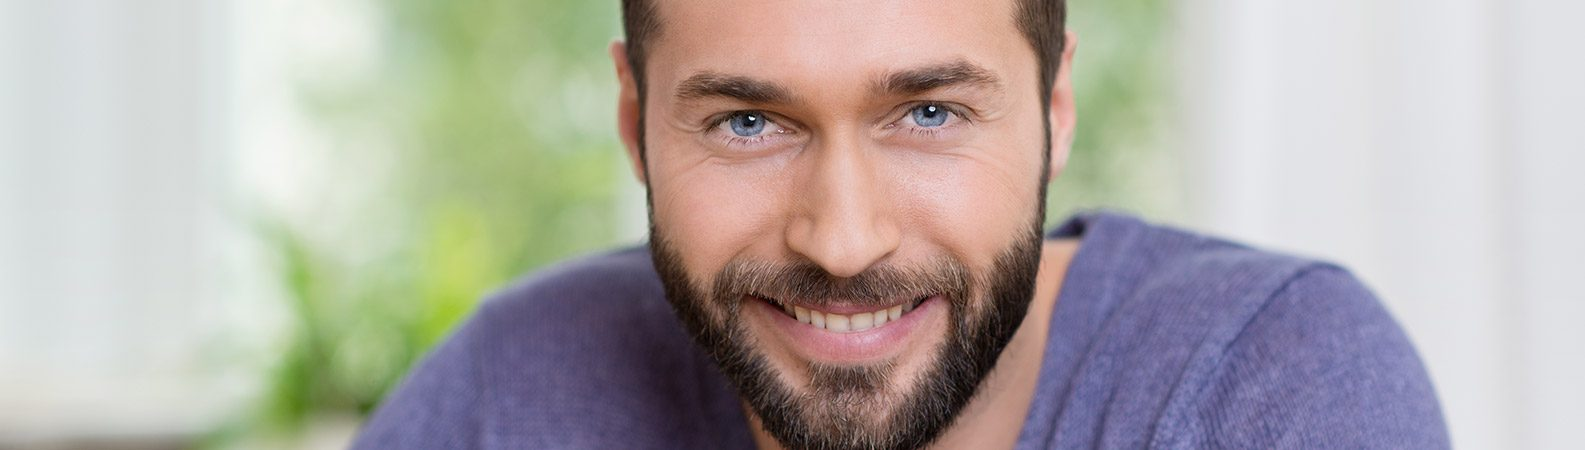 Unhappy With Your Smile? Get A Complete Smile Makeover